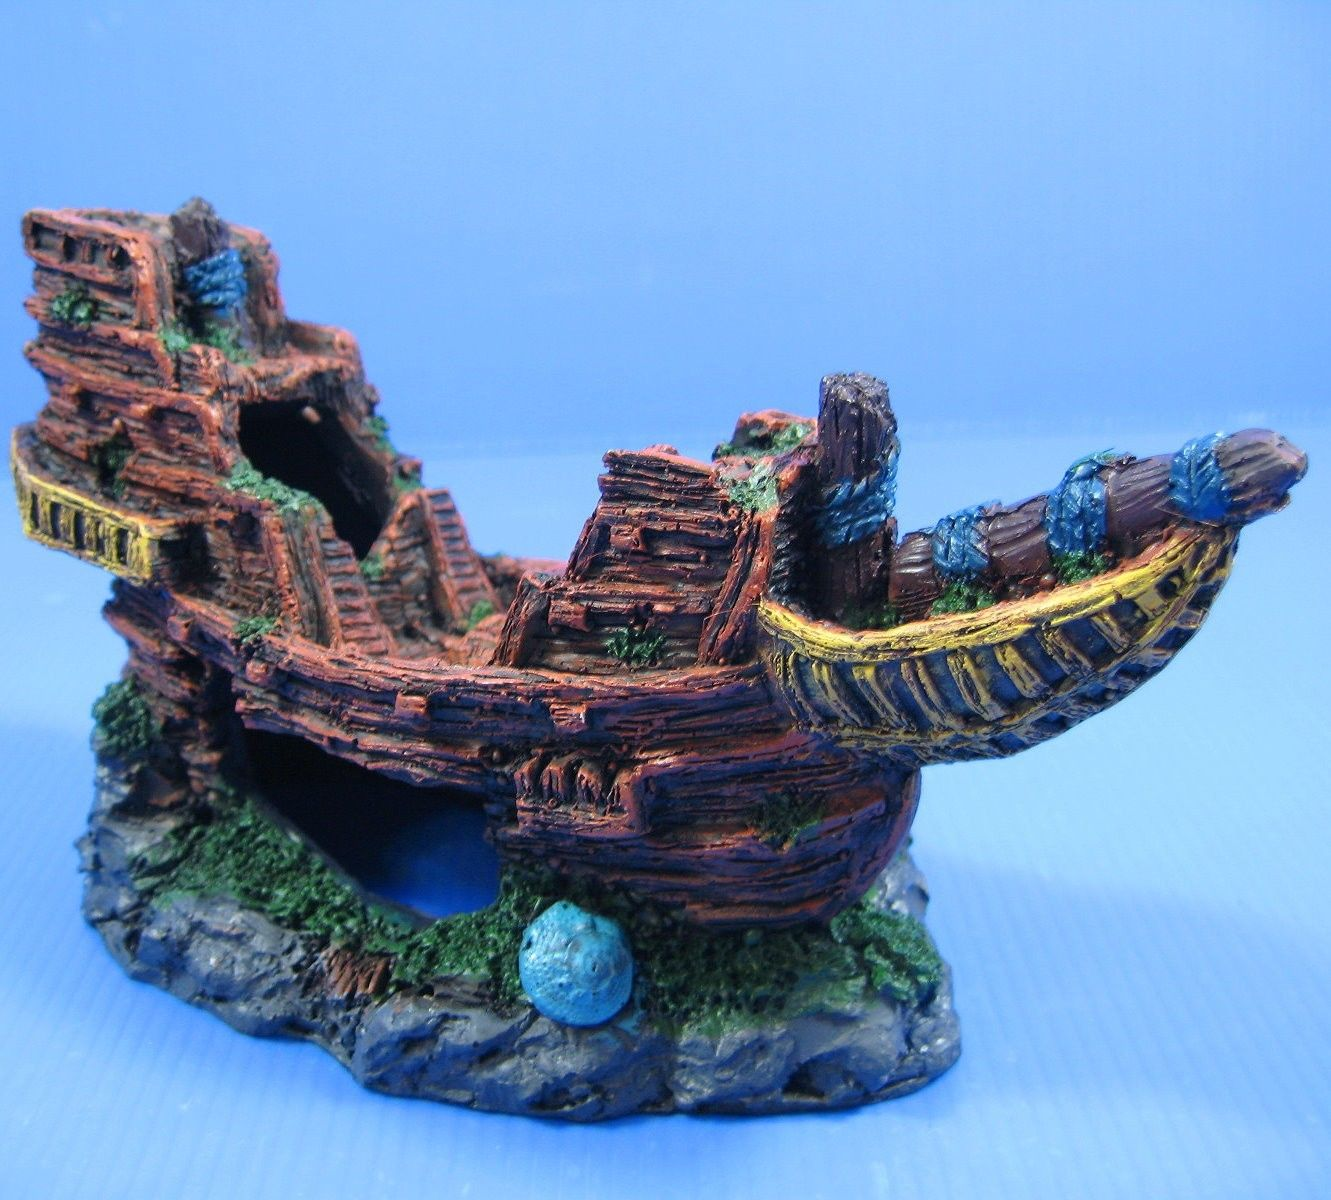 "Wooden boat Ancient ship 8.1""x3.3""x4.1"" Aquarium Ornament Decor resin Shipwreck"